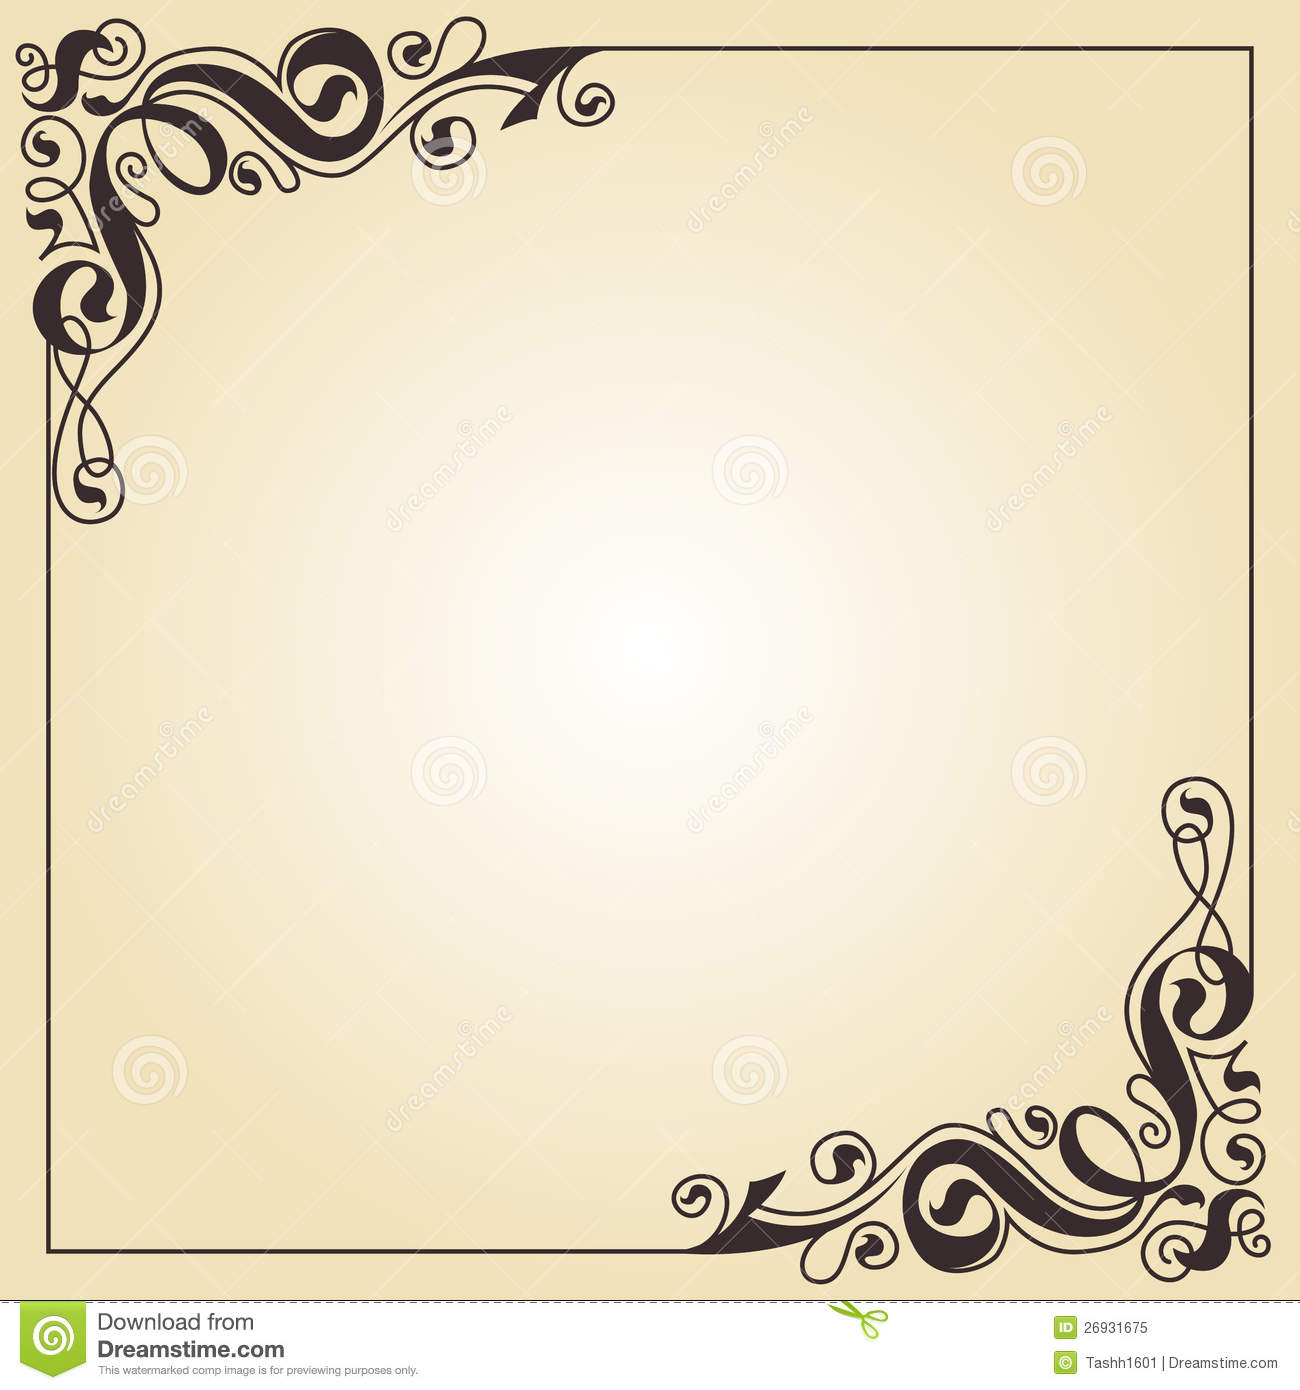 Calligraphy ornament frame royalty free stock photo